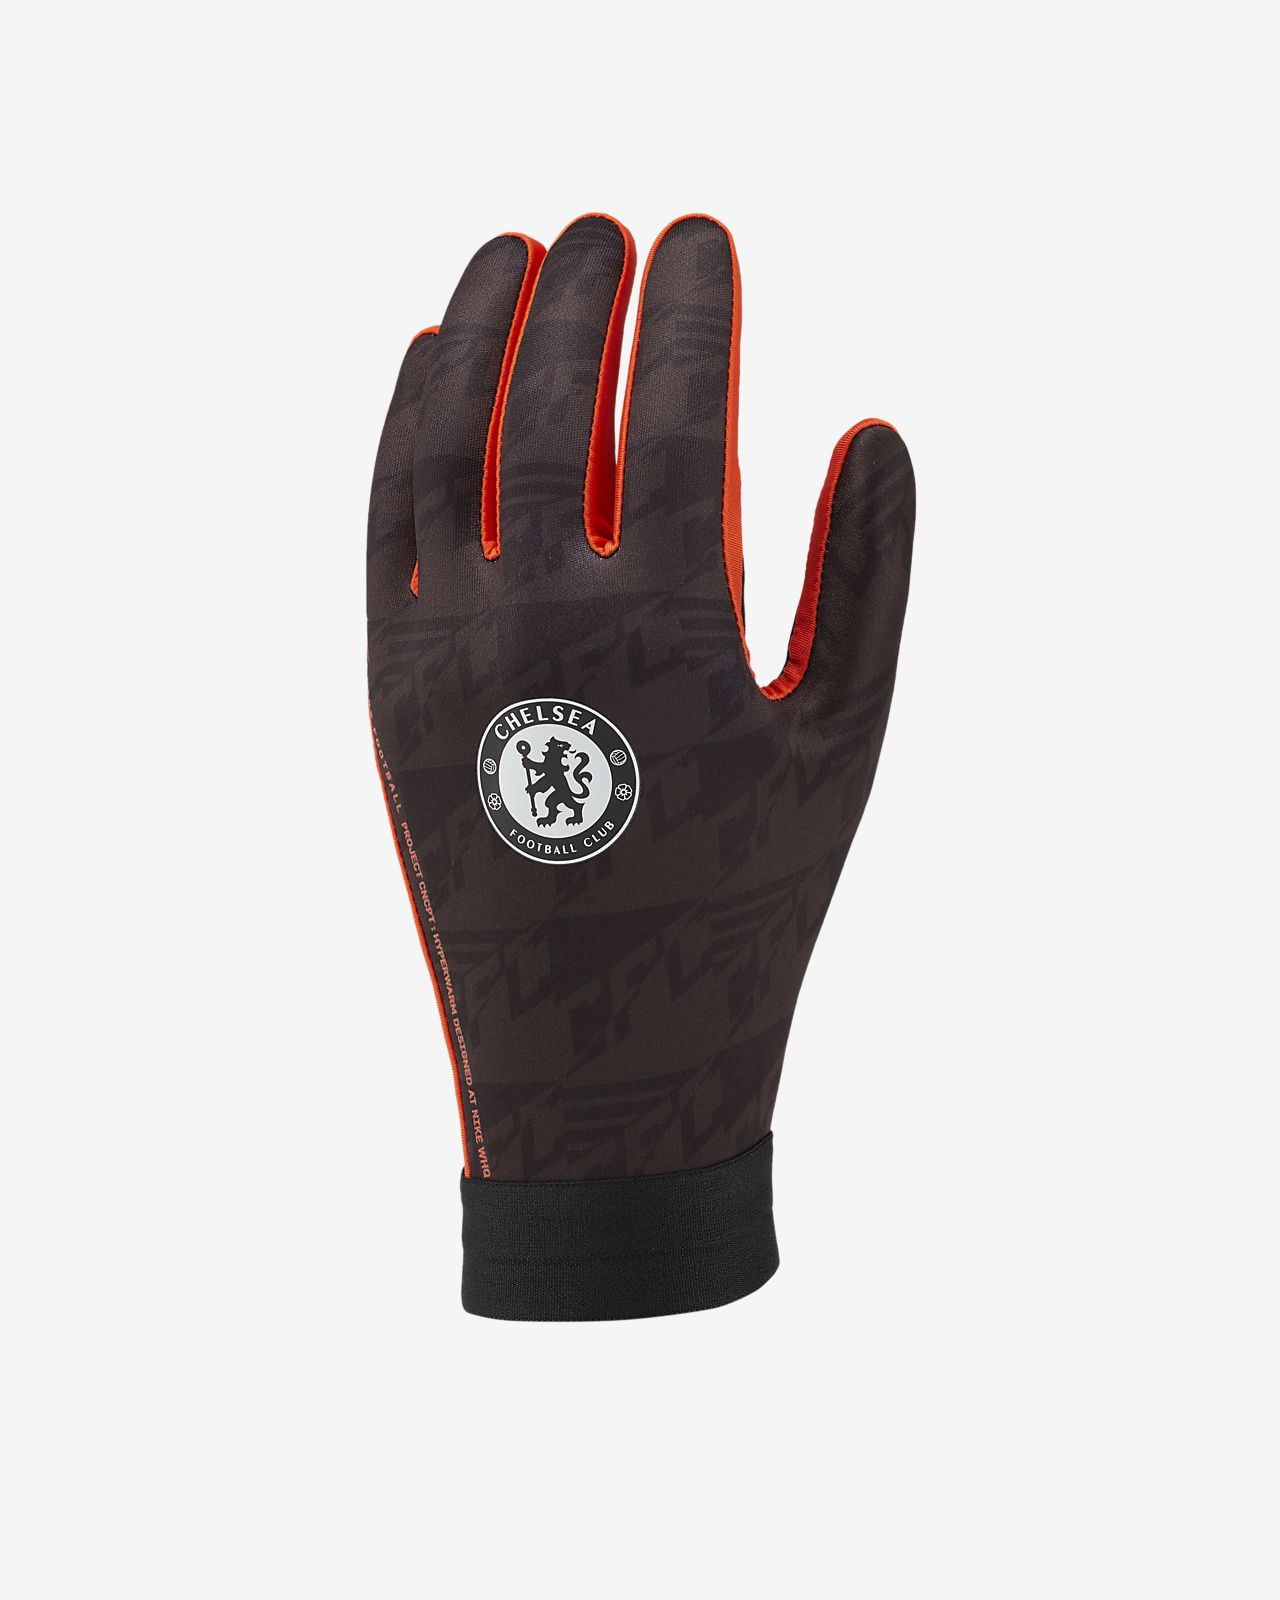 Chelsea FC HyperWarm Academy Football Gloves